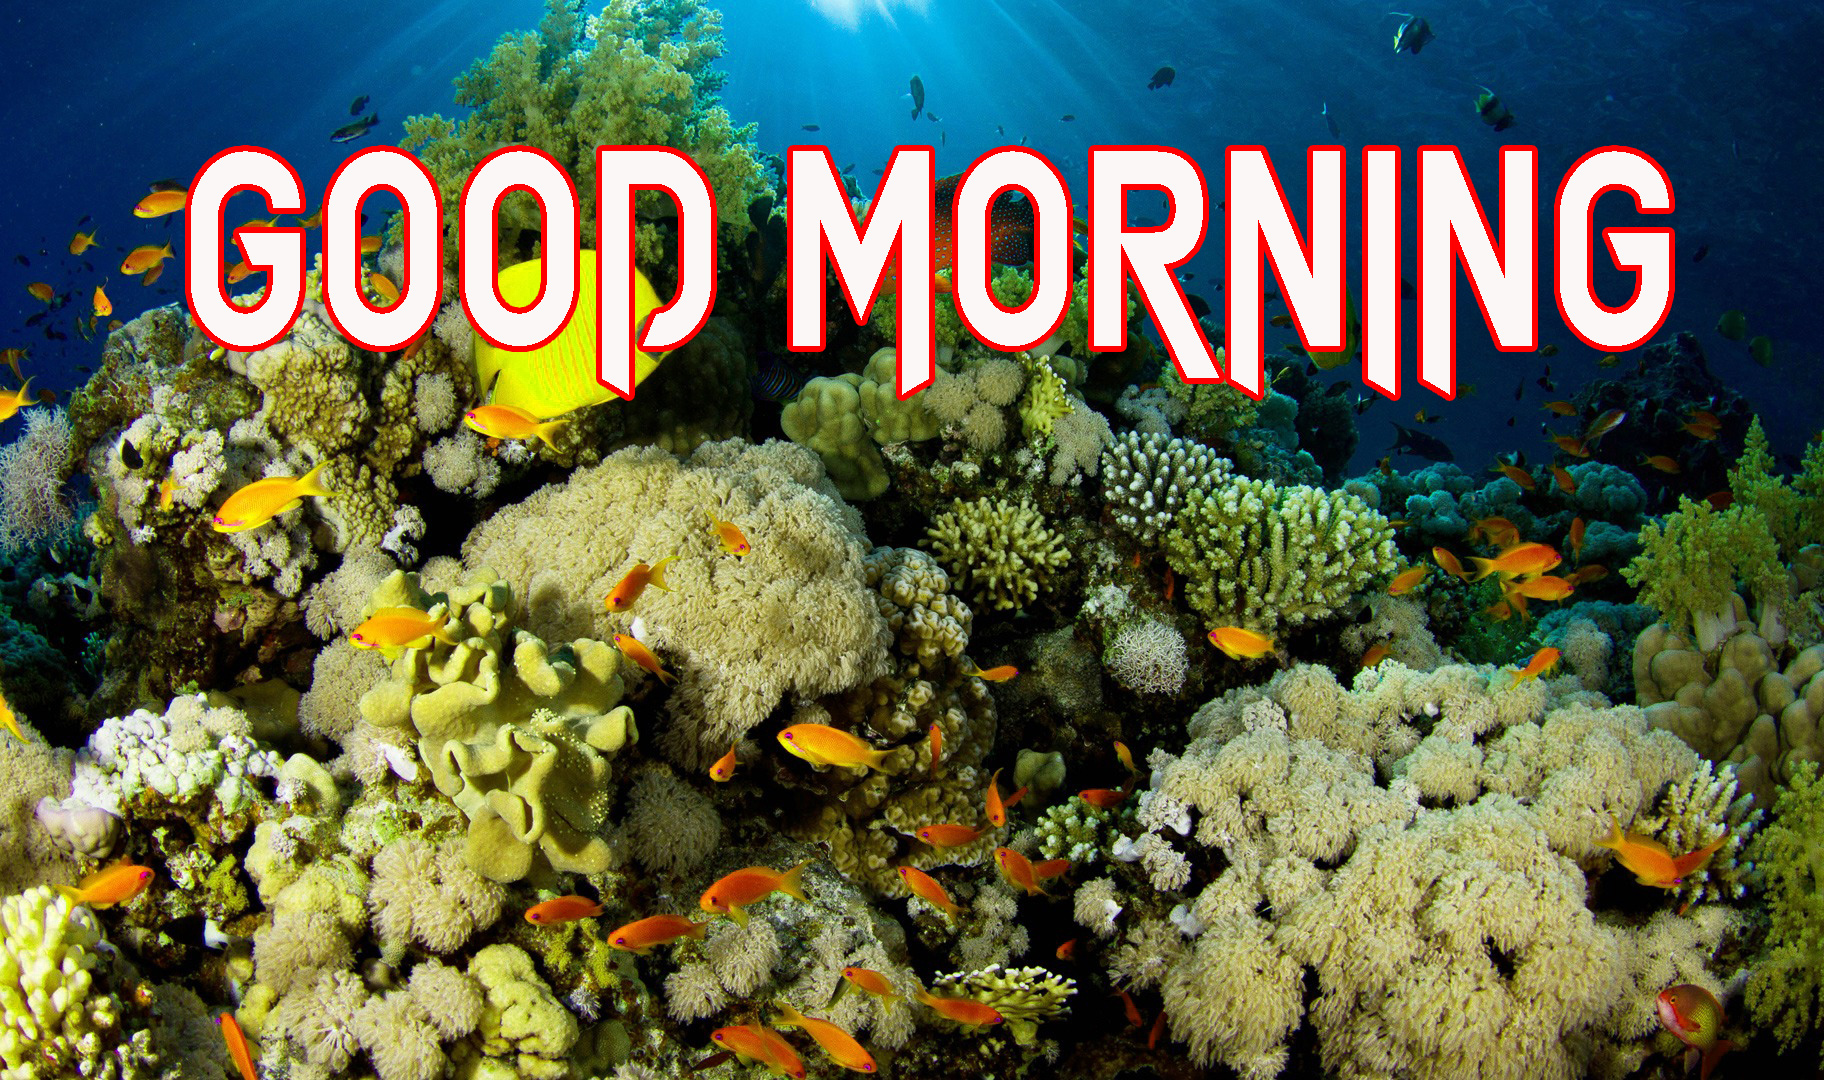 GOOD MORNING IMAGE PICTURES WALLPAPER PICS FOR WHATSAPP